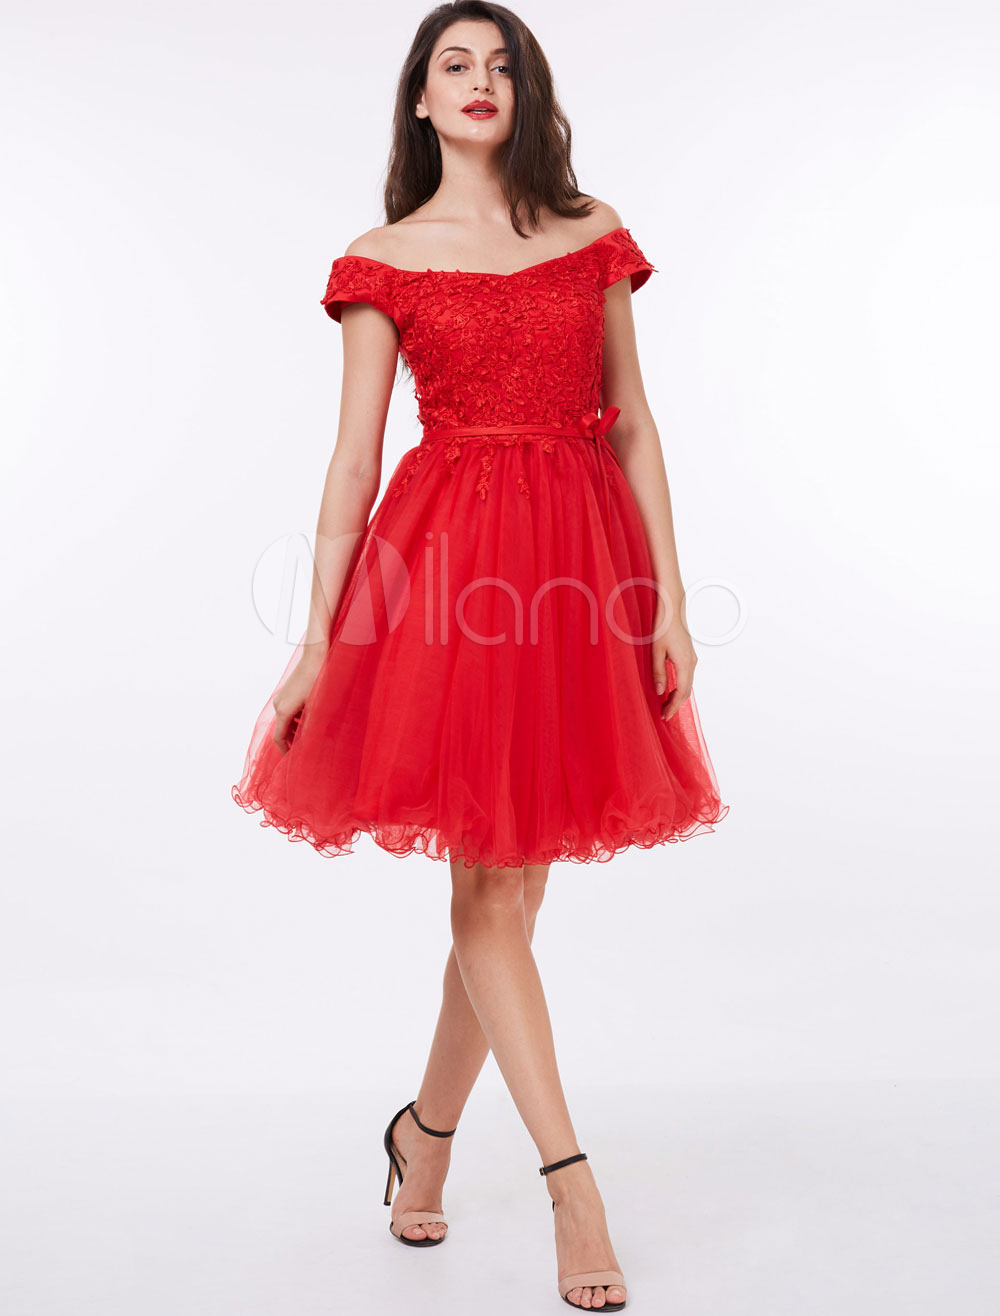 Buy Short Prom Dresses Red Off The Shoulder Homecoming Dress Lace Applique Tulle Party Dresses for $65.99 in Milanoo store